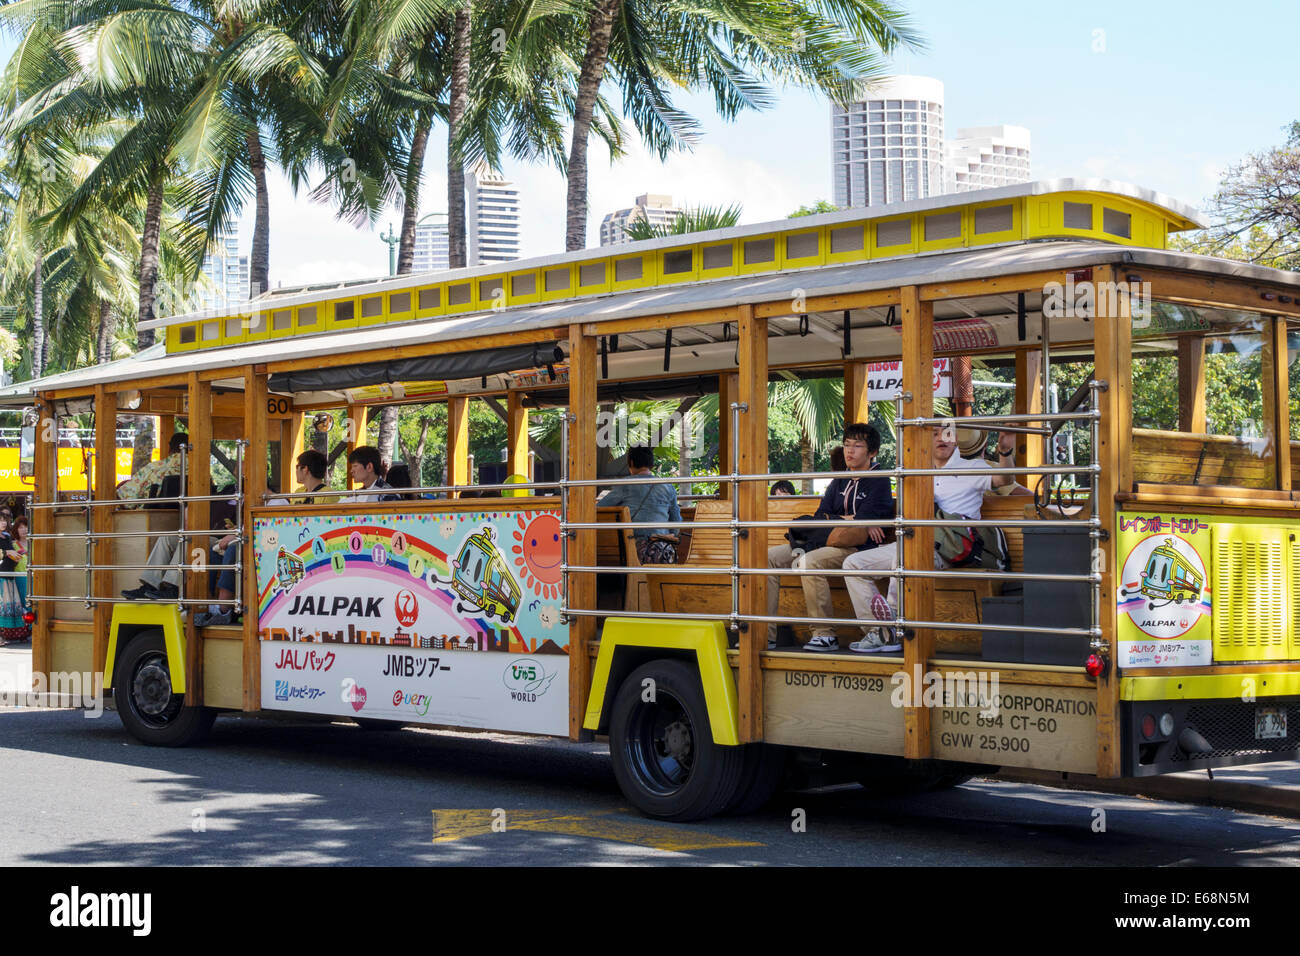 Hawaii Hawaiian Honolulu Ala Moana Center mall shopping Jalpak Trolley Japanese tourists riding transportation Stock Photo